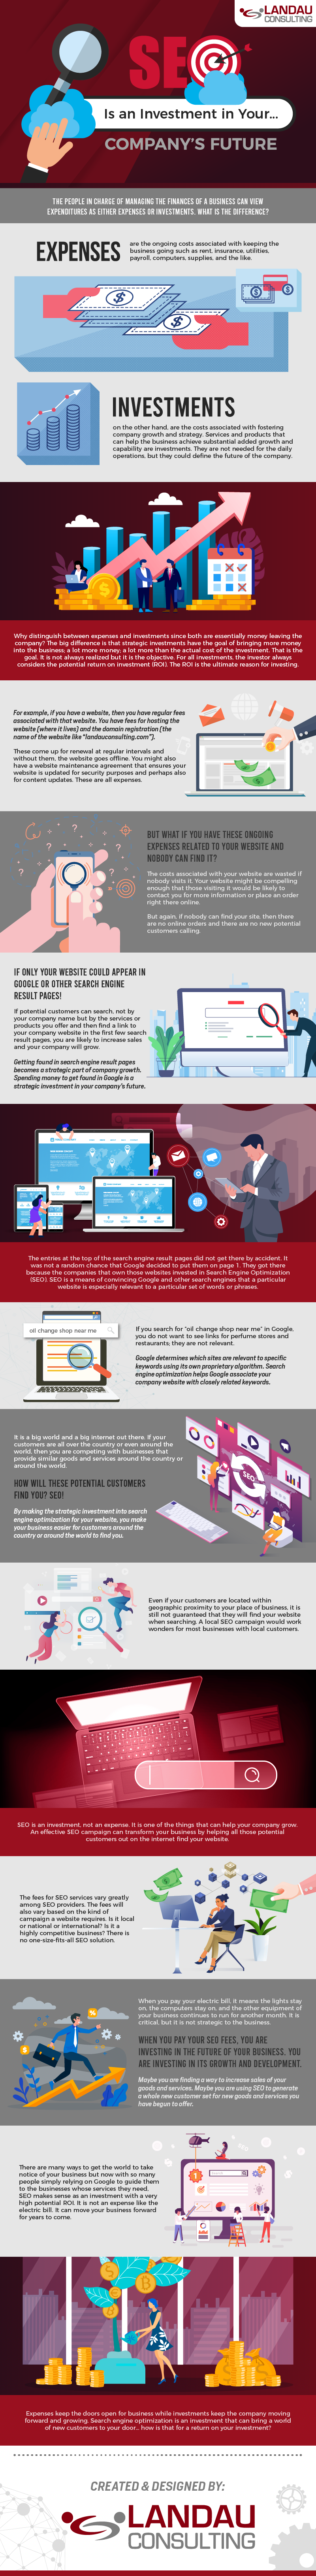 SEO is an Investment in Your Company's Future #infographic